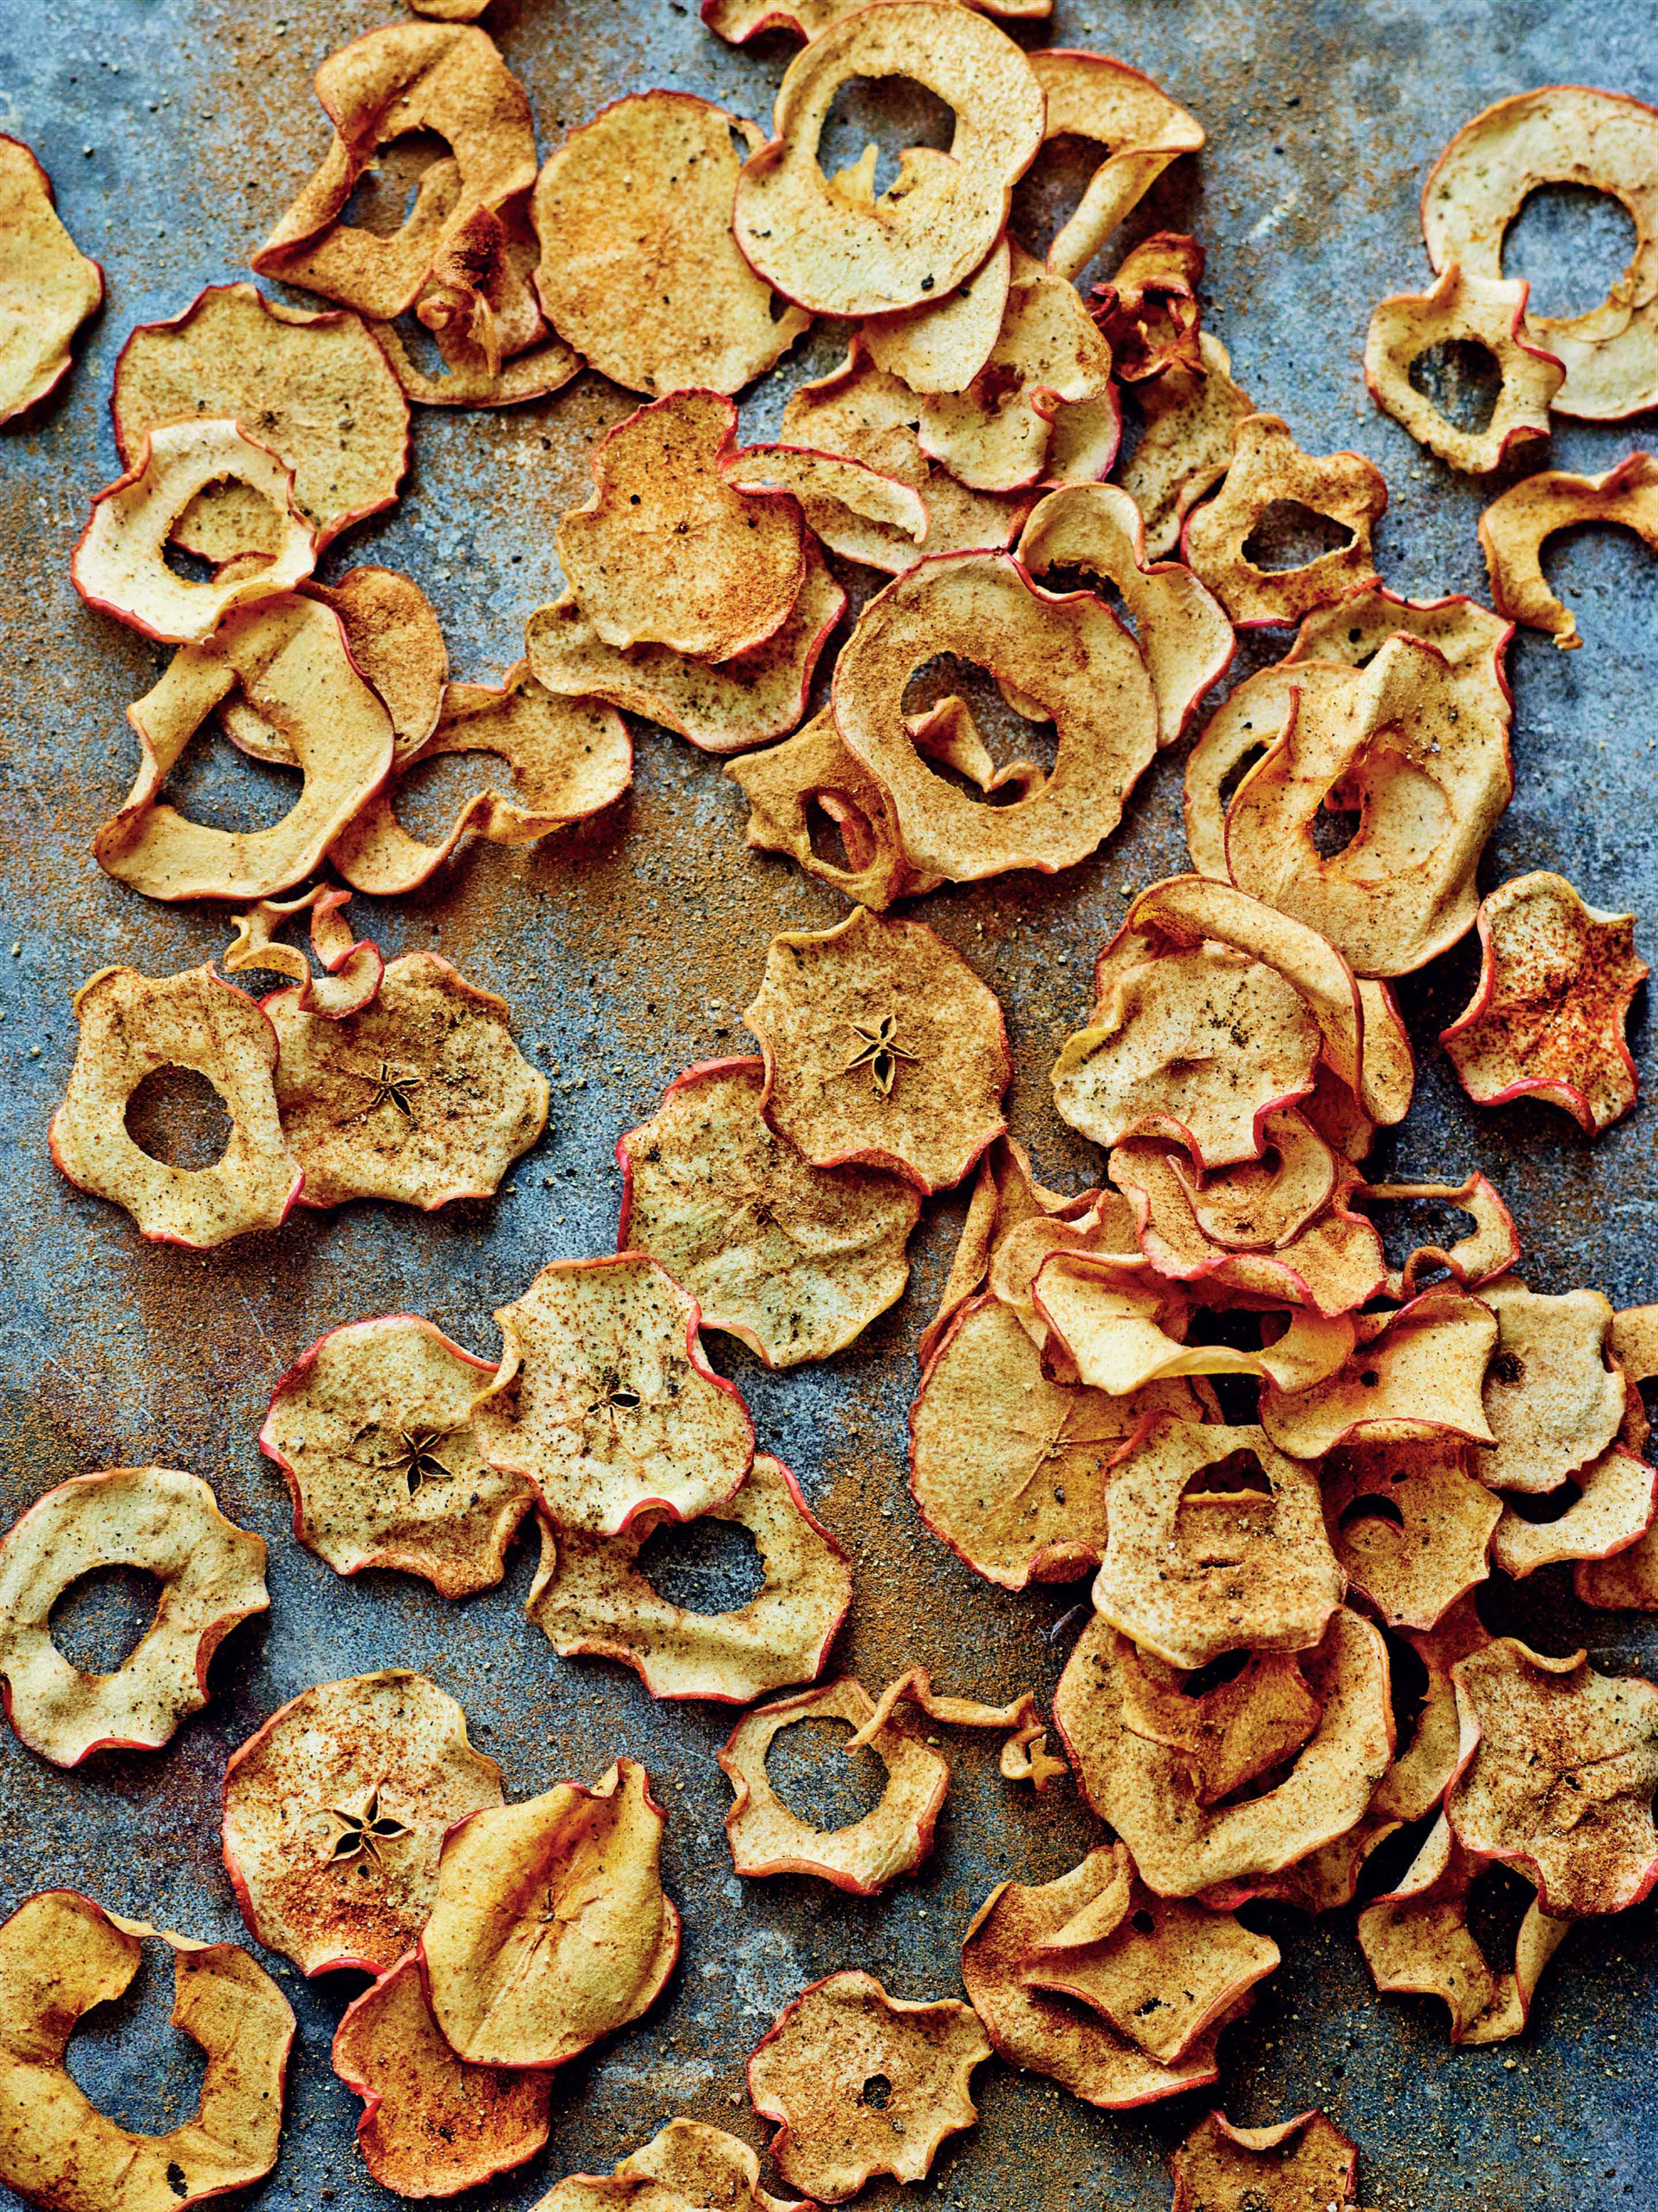 Cinnamon and black pepper apple crisps